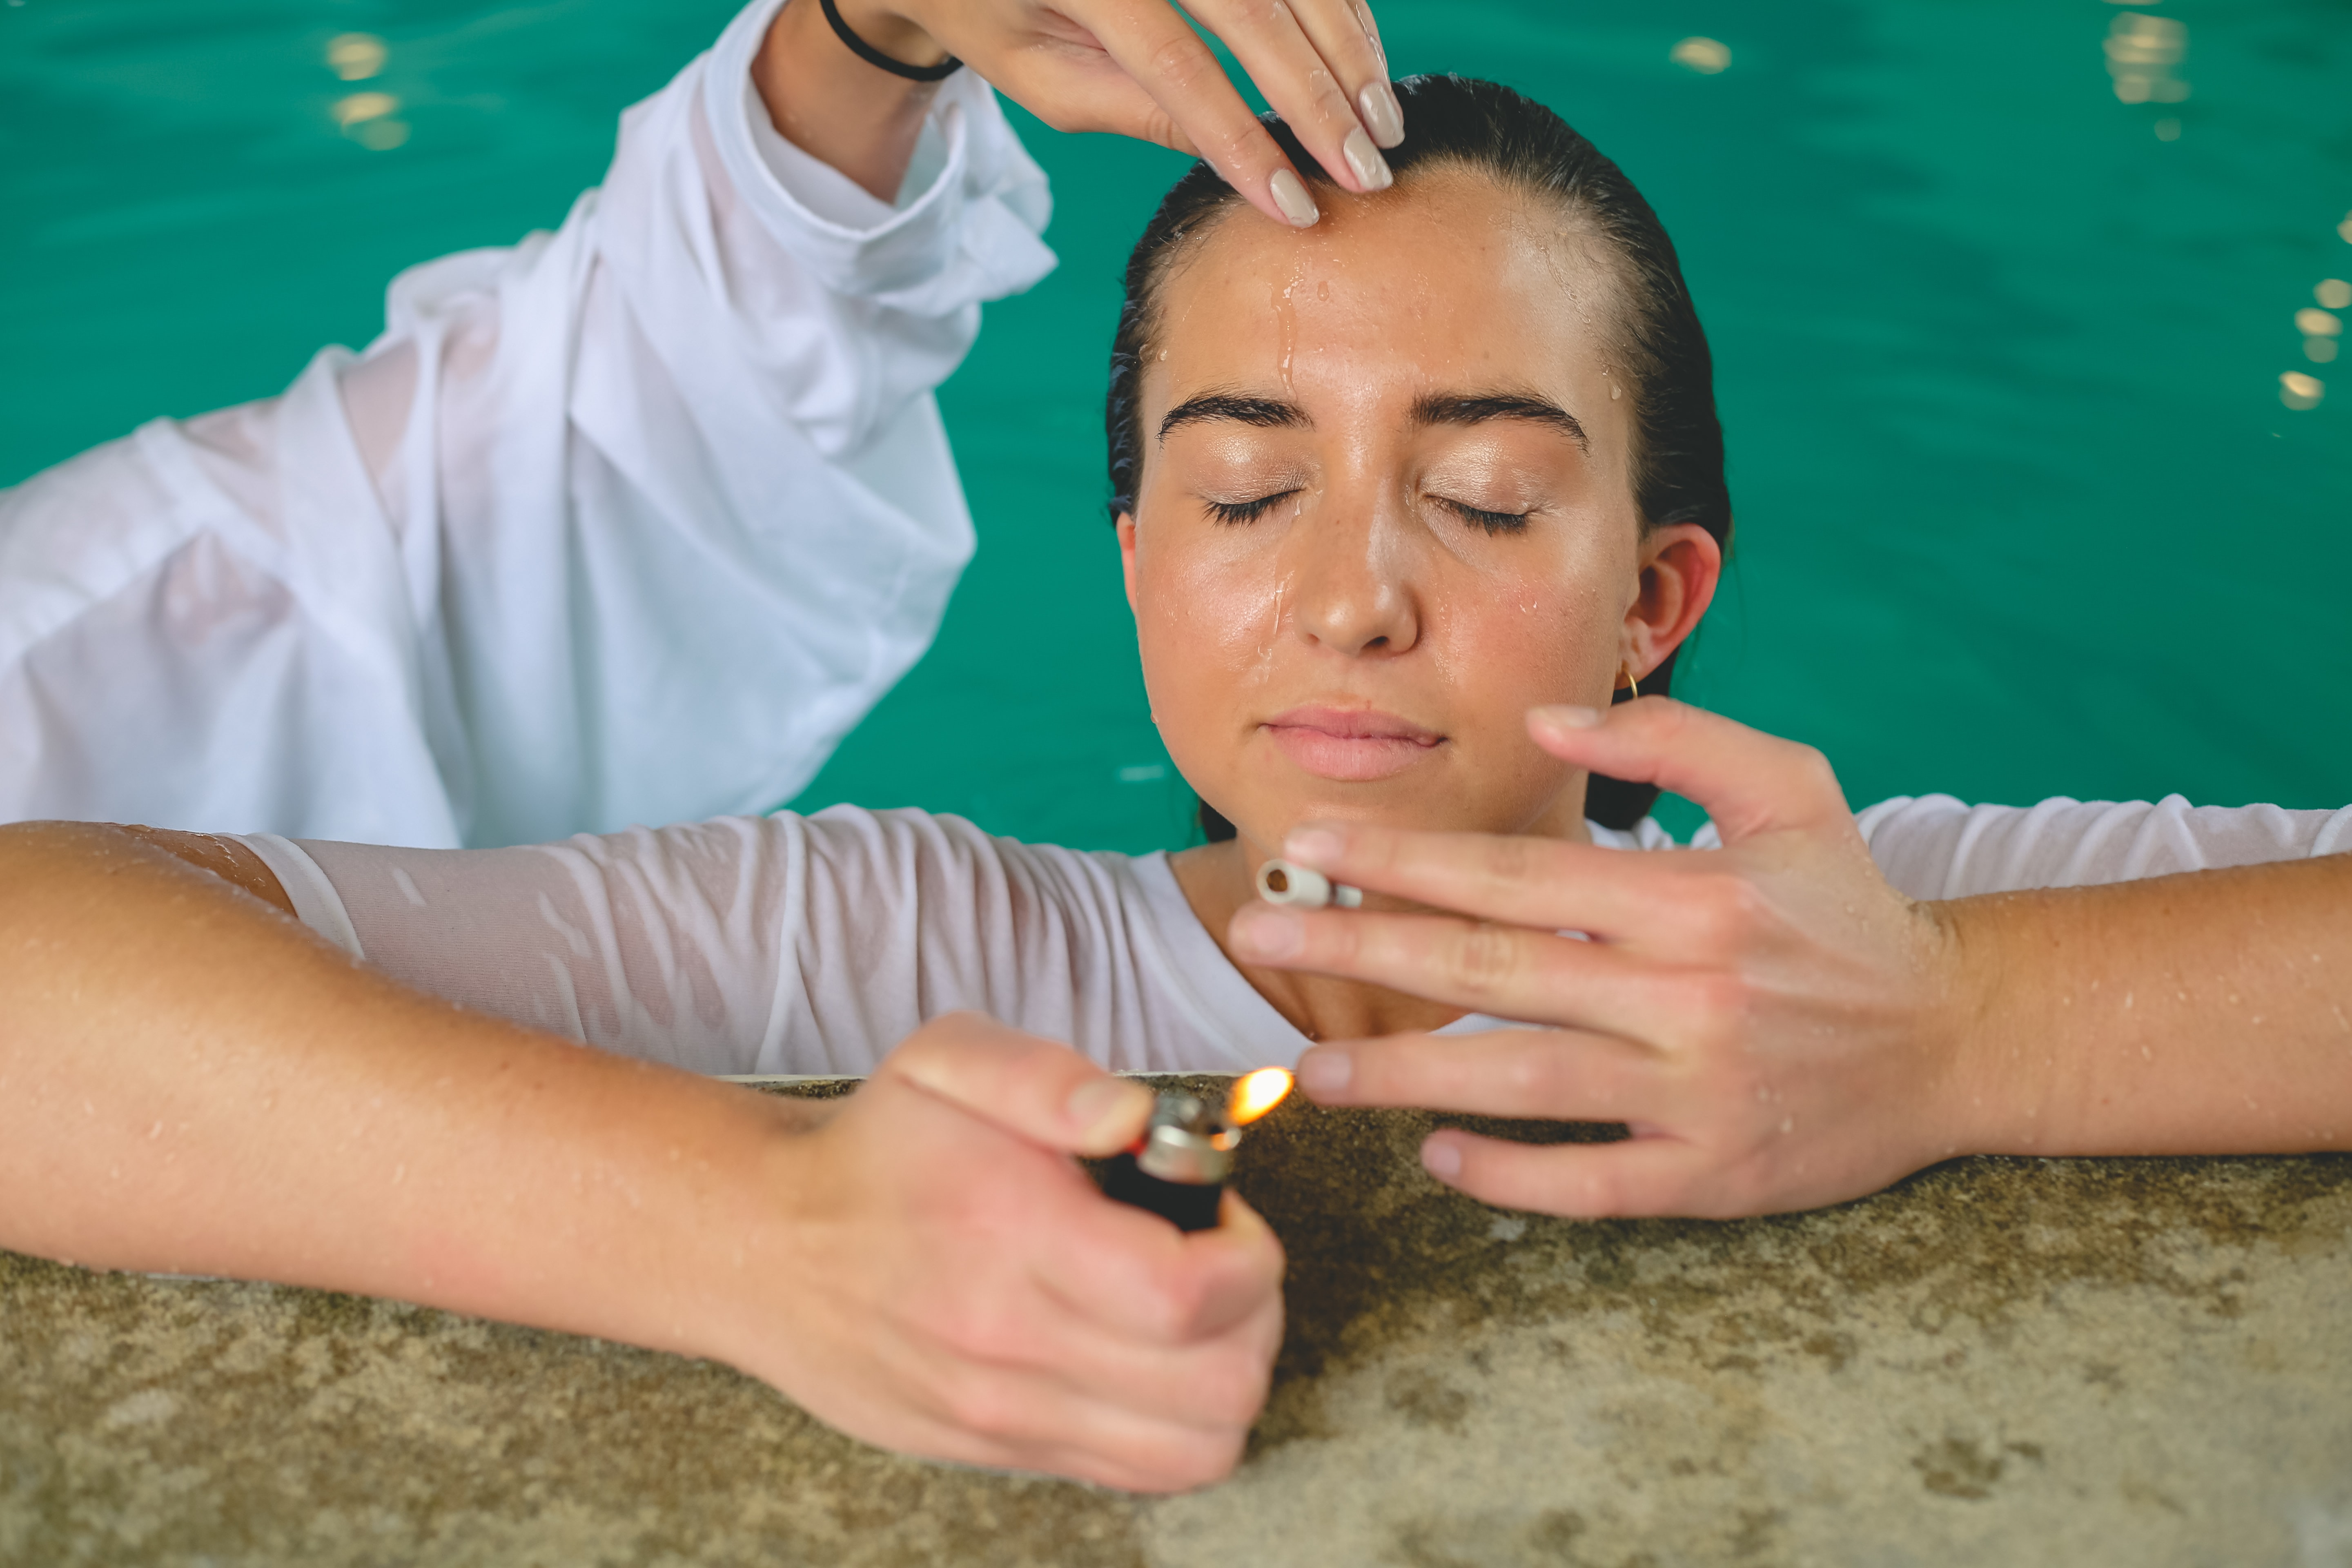 woman soak in water holding cigarette stick and lighter